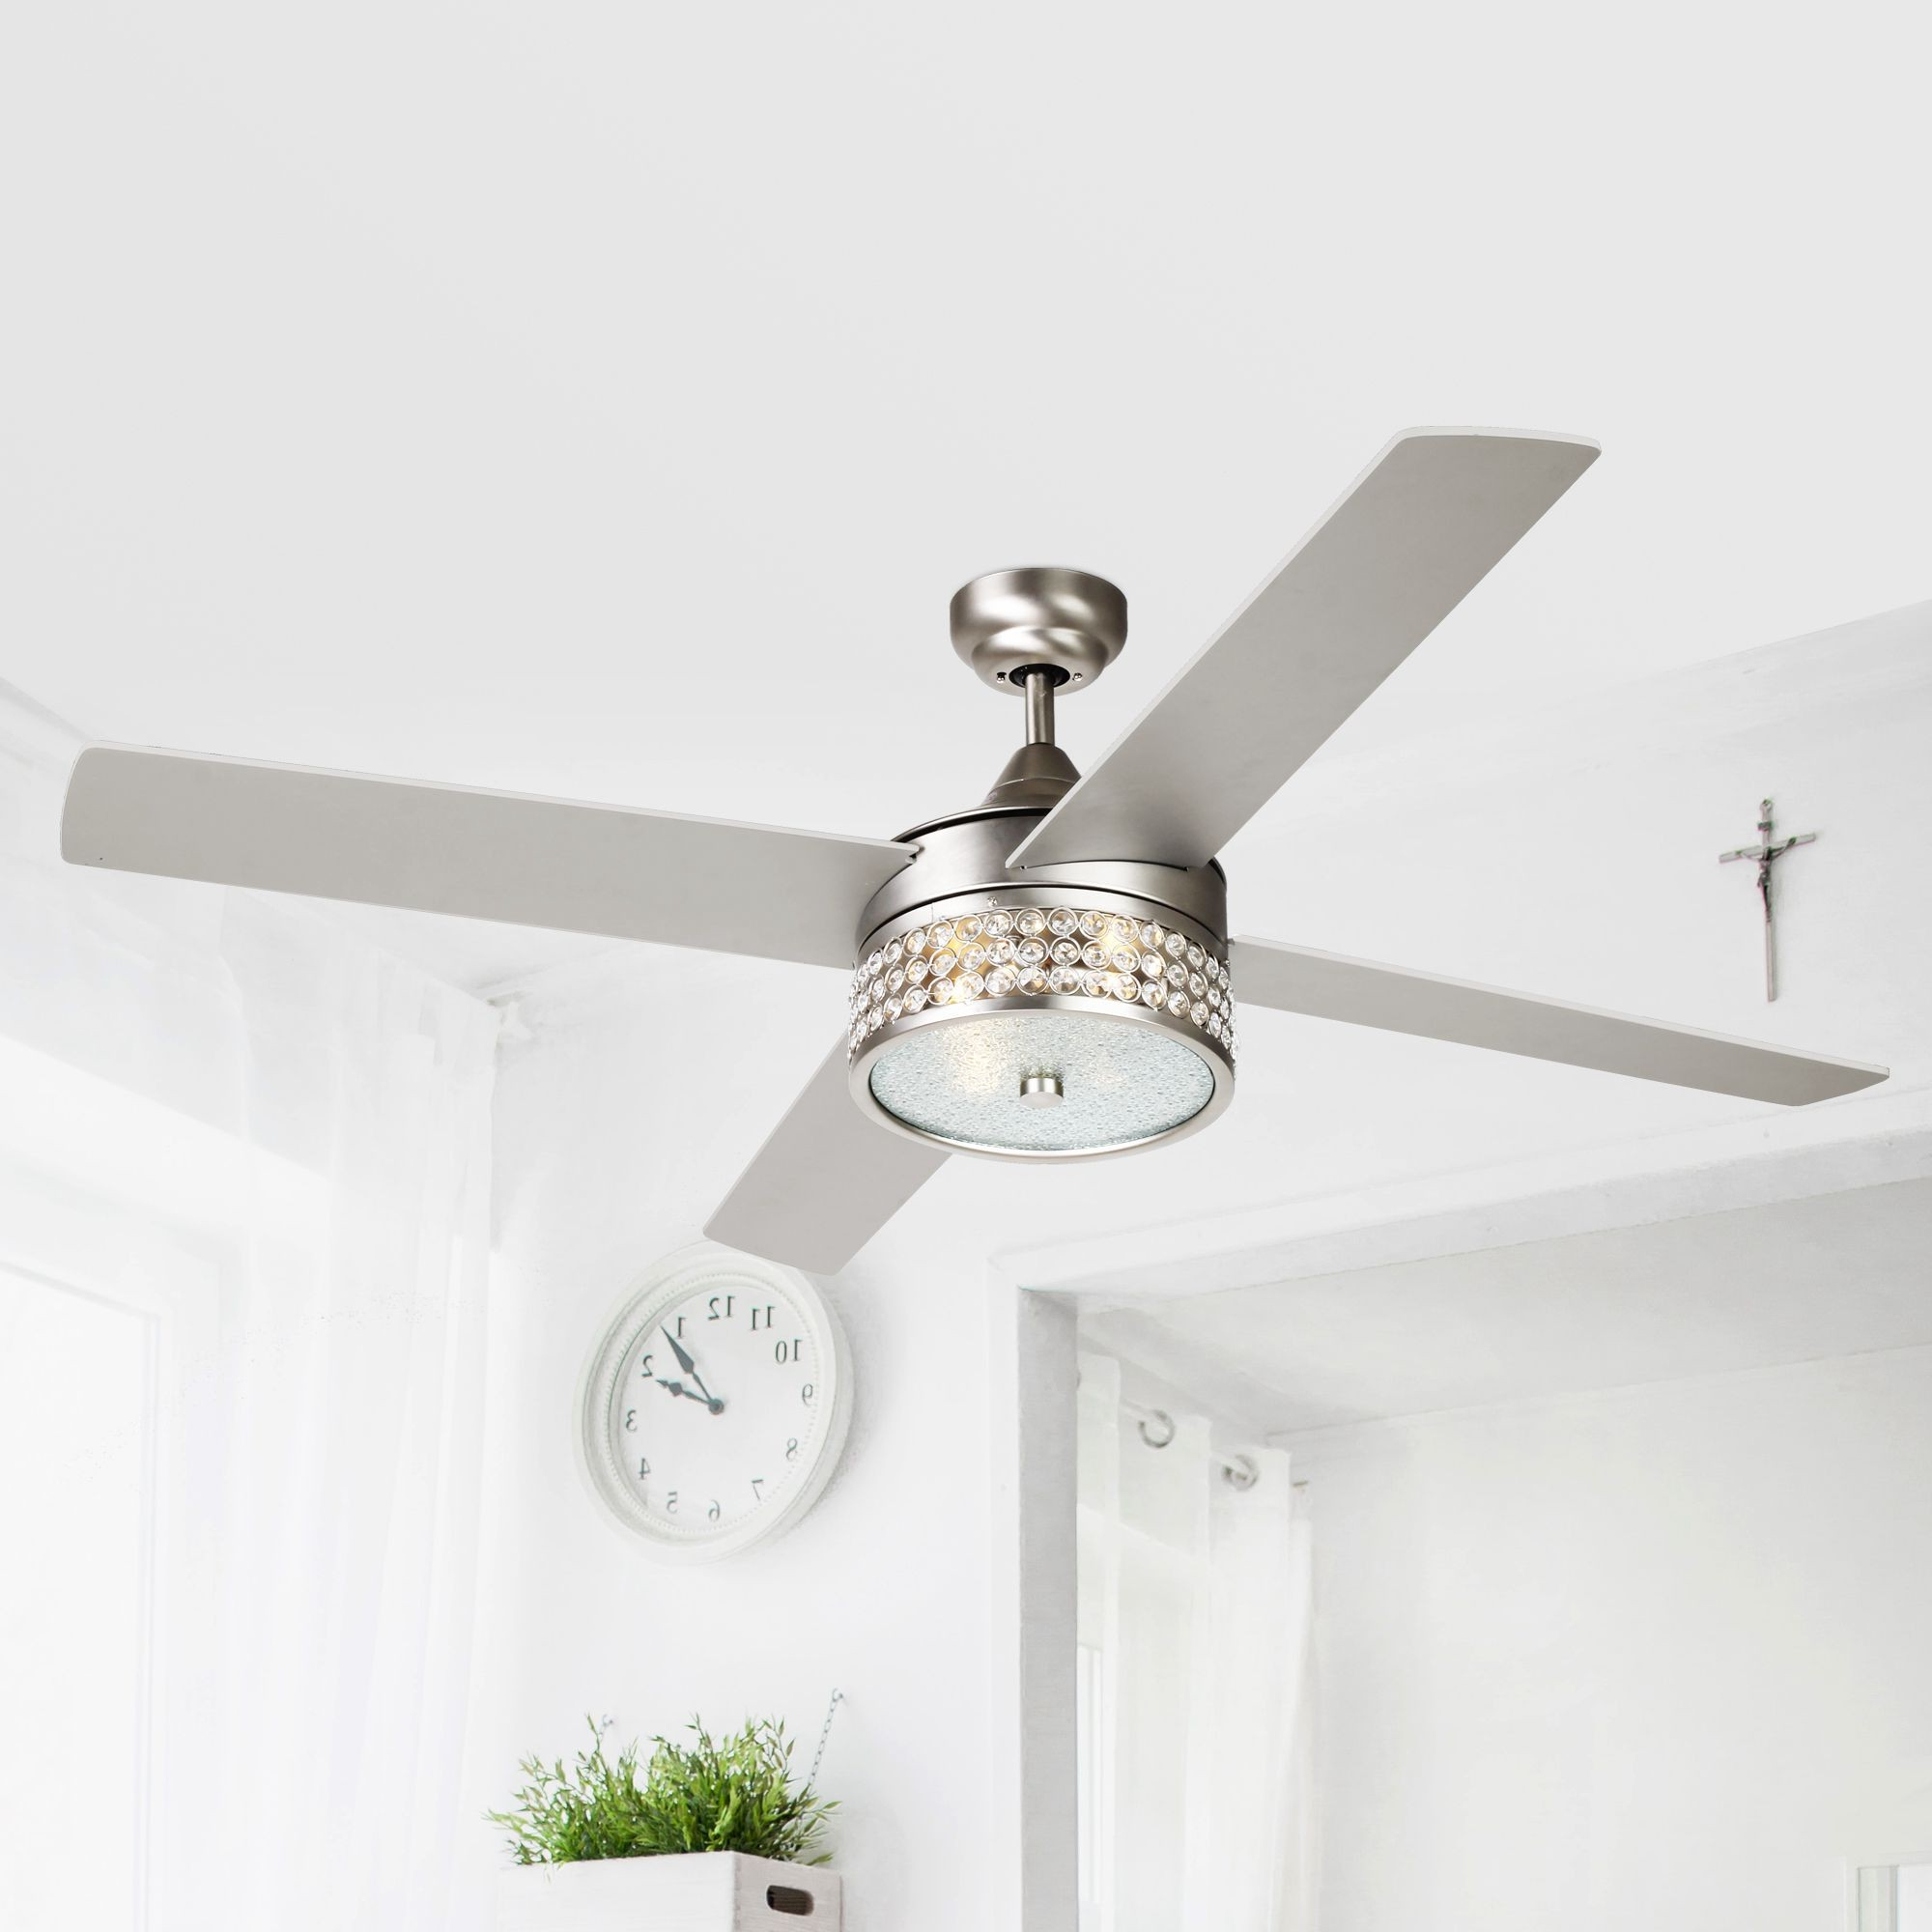 """52"""" Cason Modern Crystal Chandelier Ceiling Fan With Led Light And Remote Control, 4 Blades, Satin Nickel With Most Recently Released Cason 4 Blade Ceiling Fans (View 3 of 20)"""